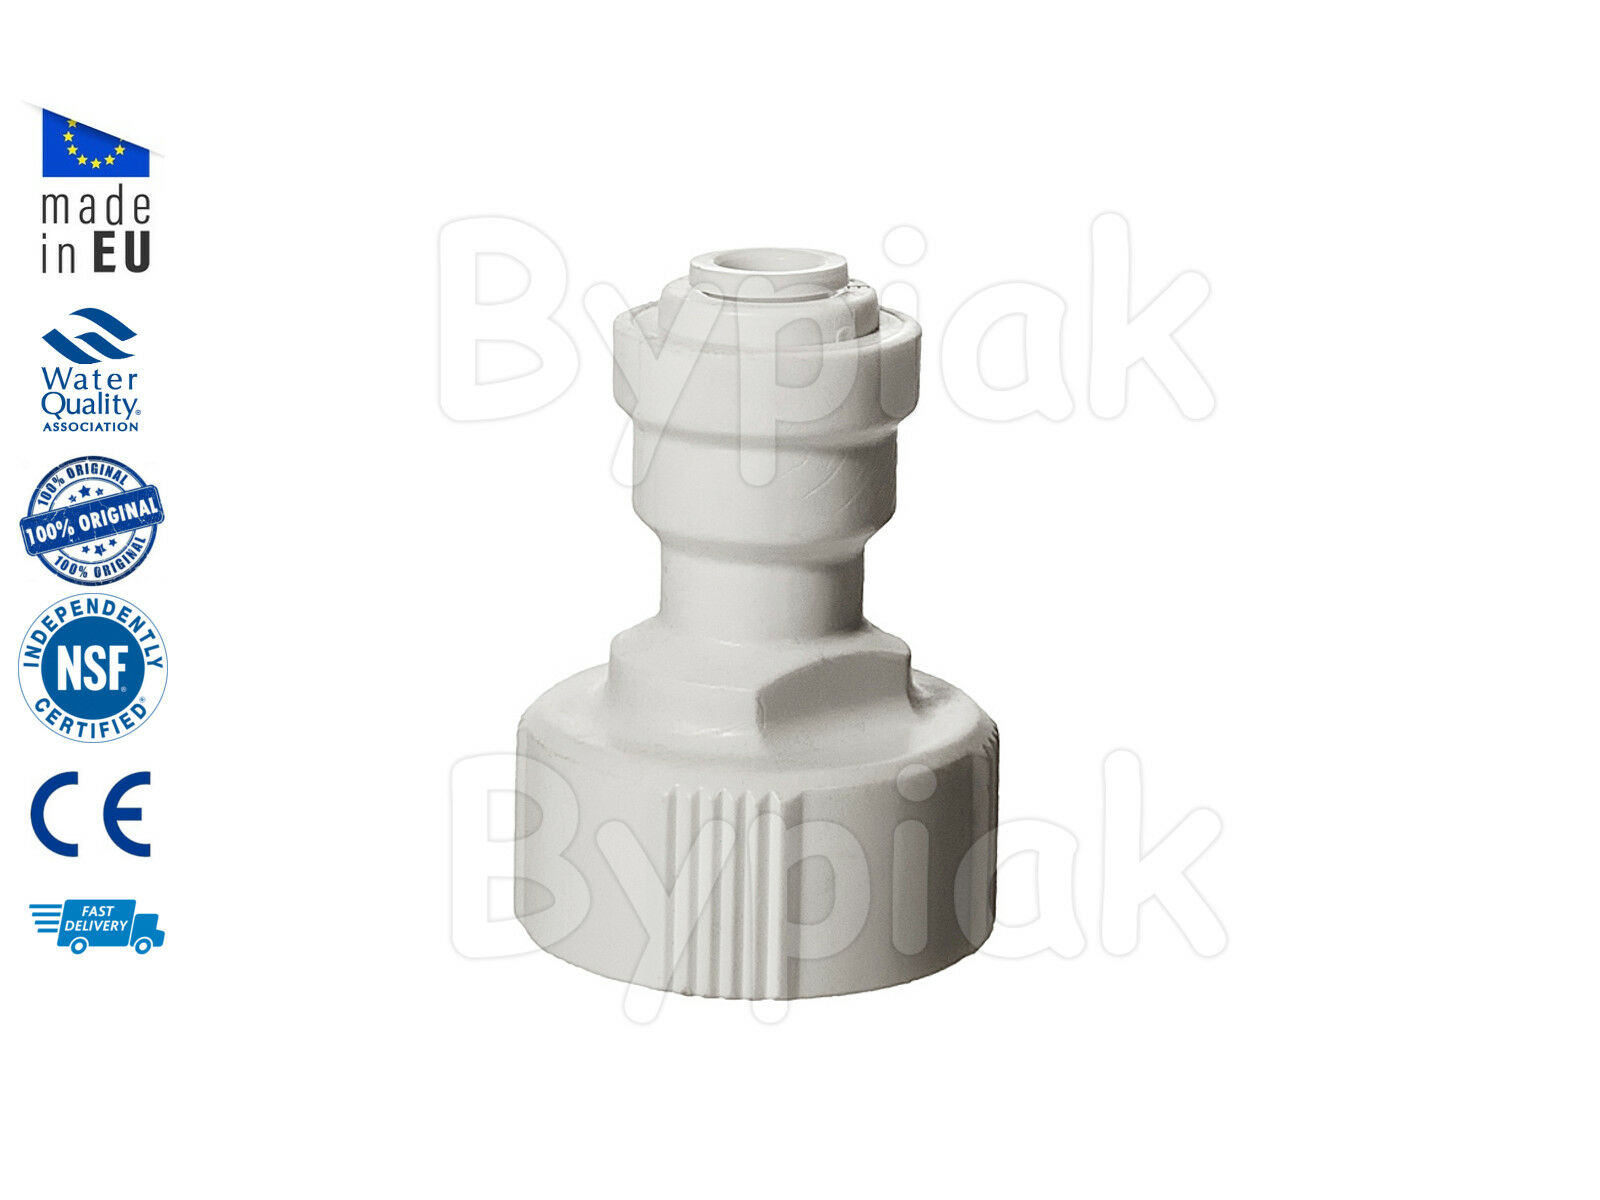 "New 3/4"" BSP to 1/4"" Push Fit Standard UK Garden Tap Adaptor Connector"